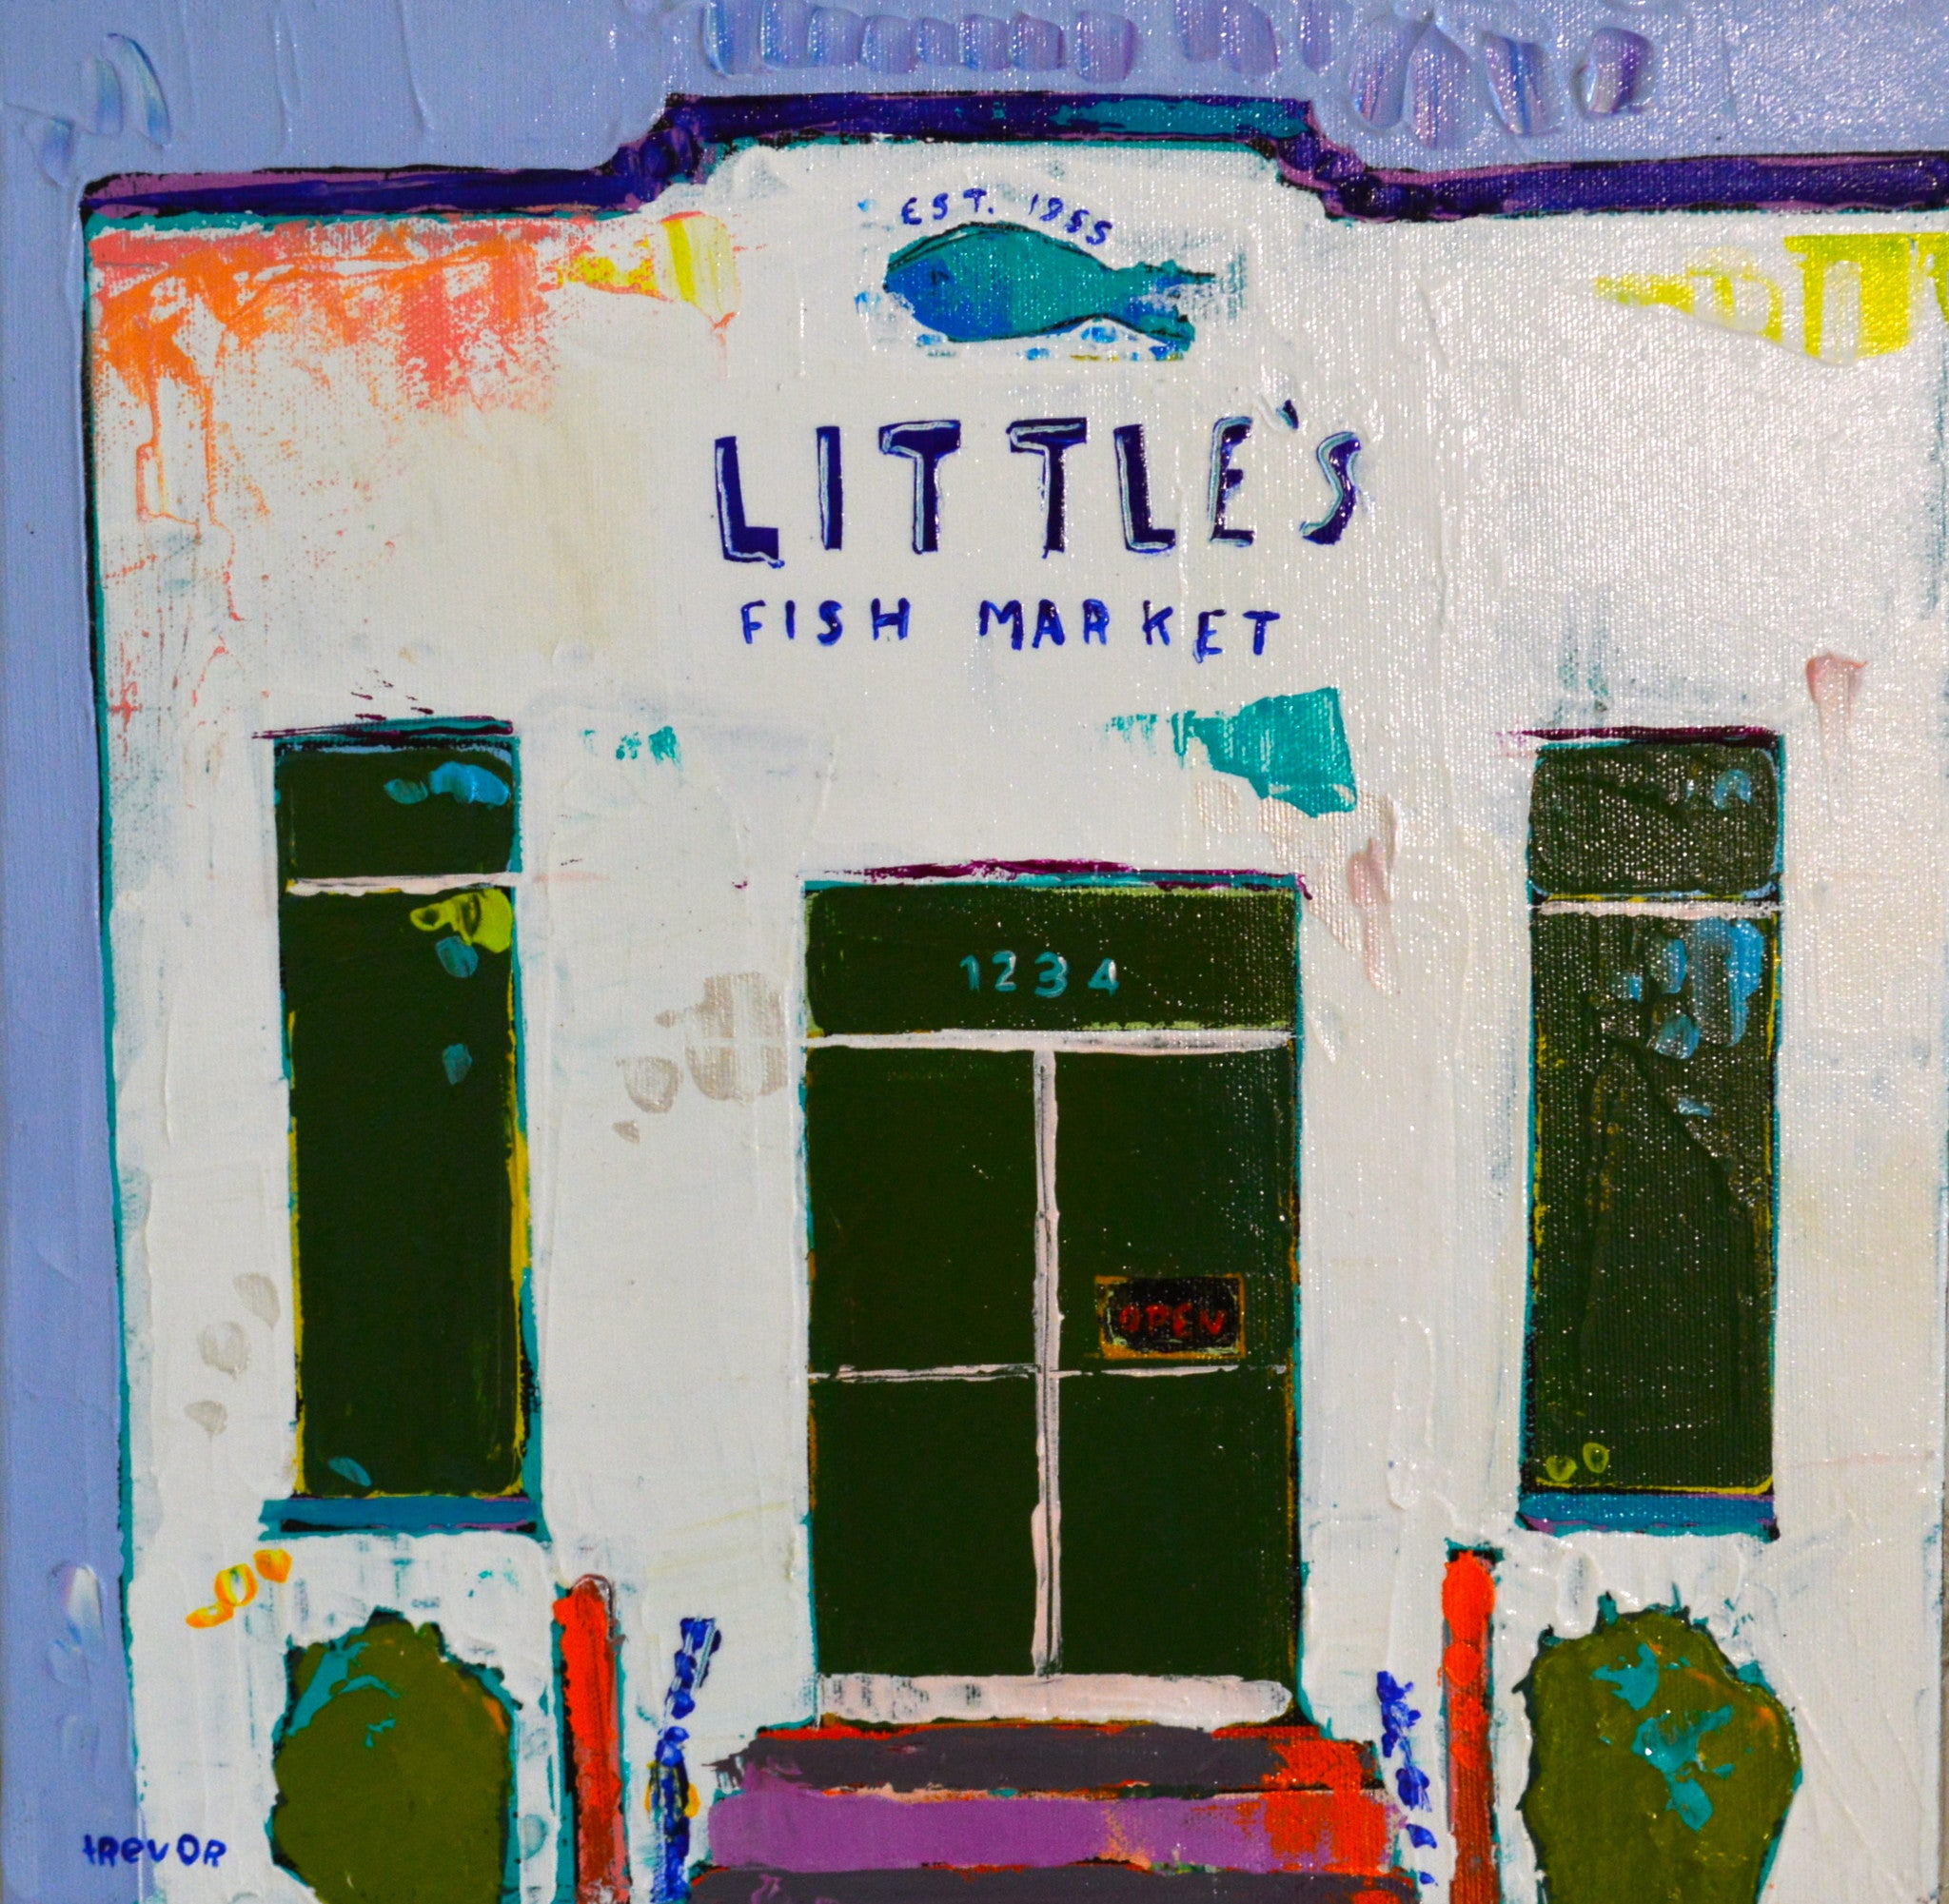 Little's Fish Market